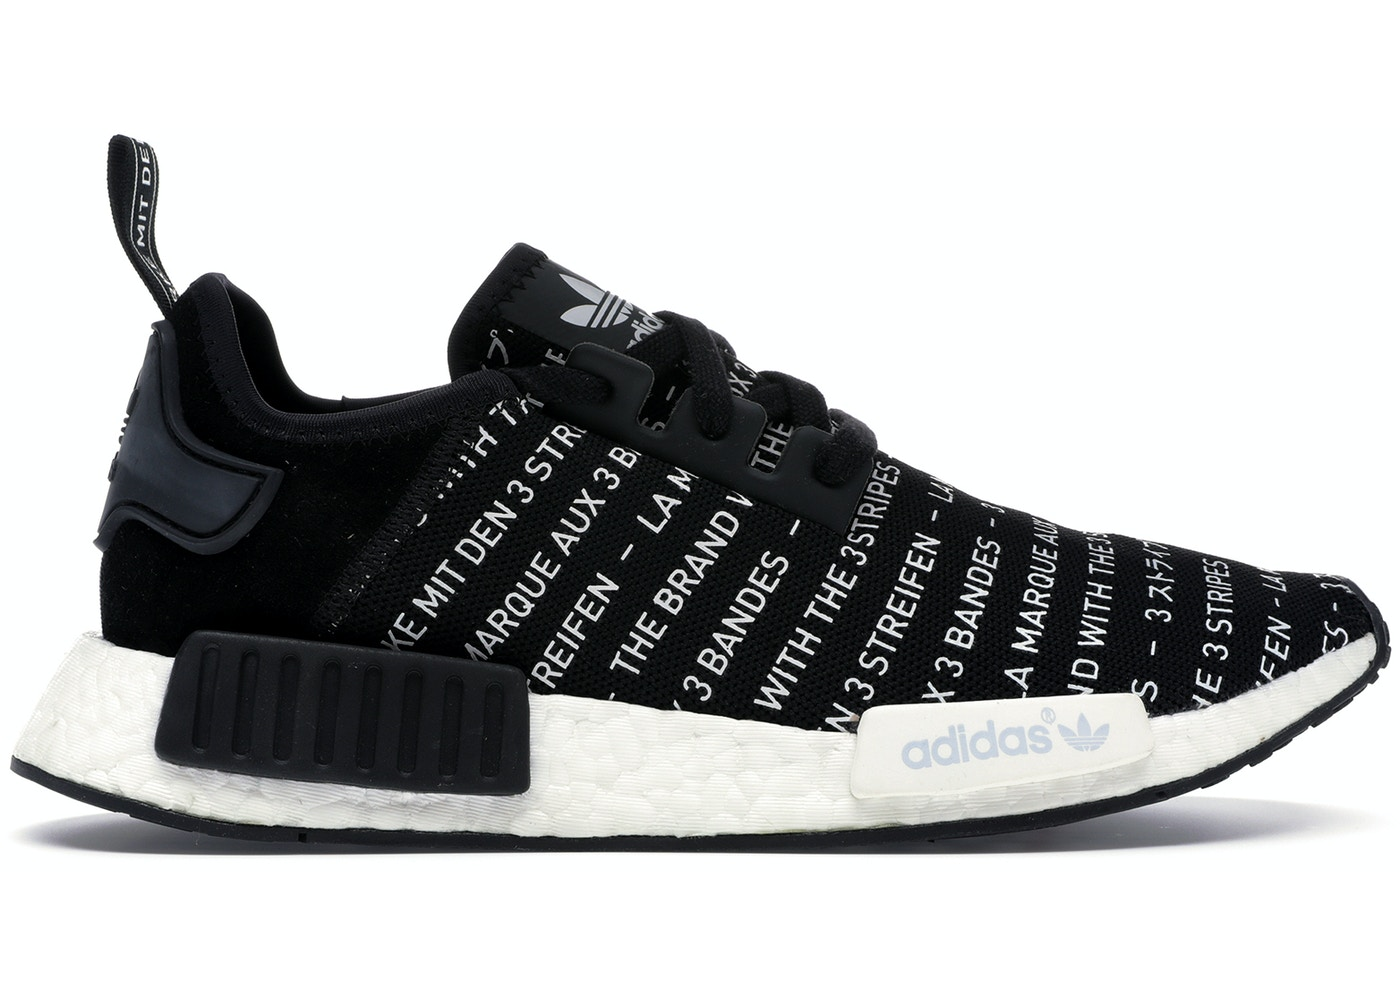 6ea0c4ef6 ... adidas NMD R1 Shoes - New Lowest Asks ...